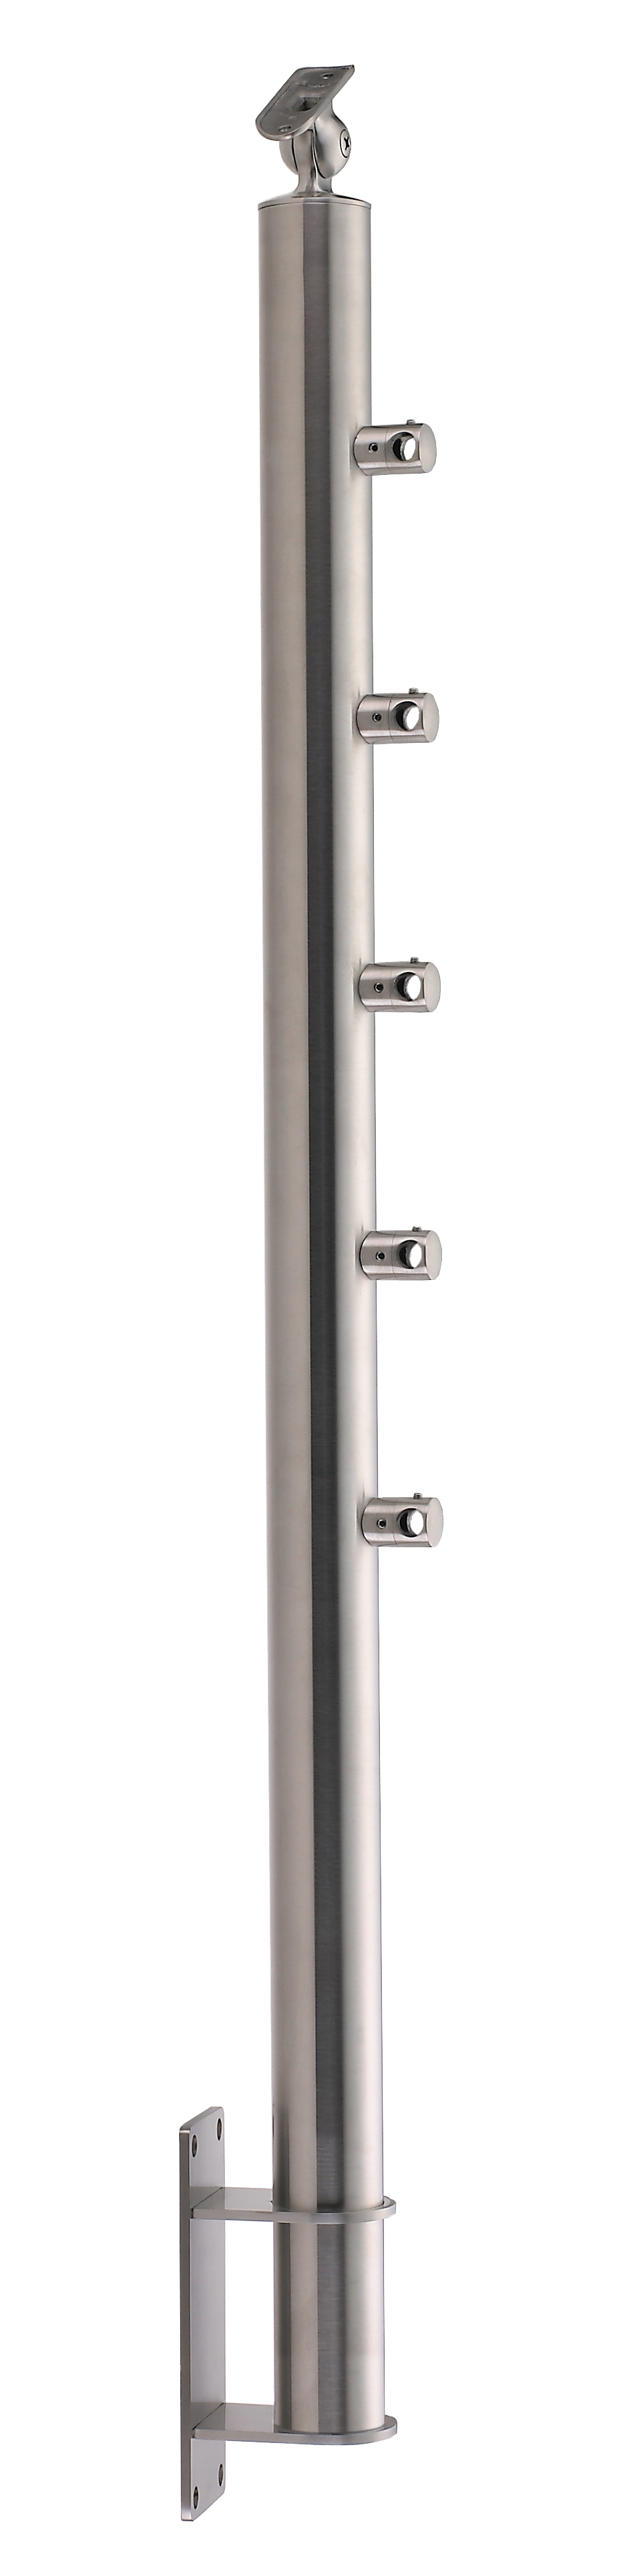 Stainless Steel Balustrade Posts - Tubular - SS:2020559A